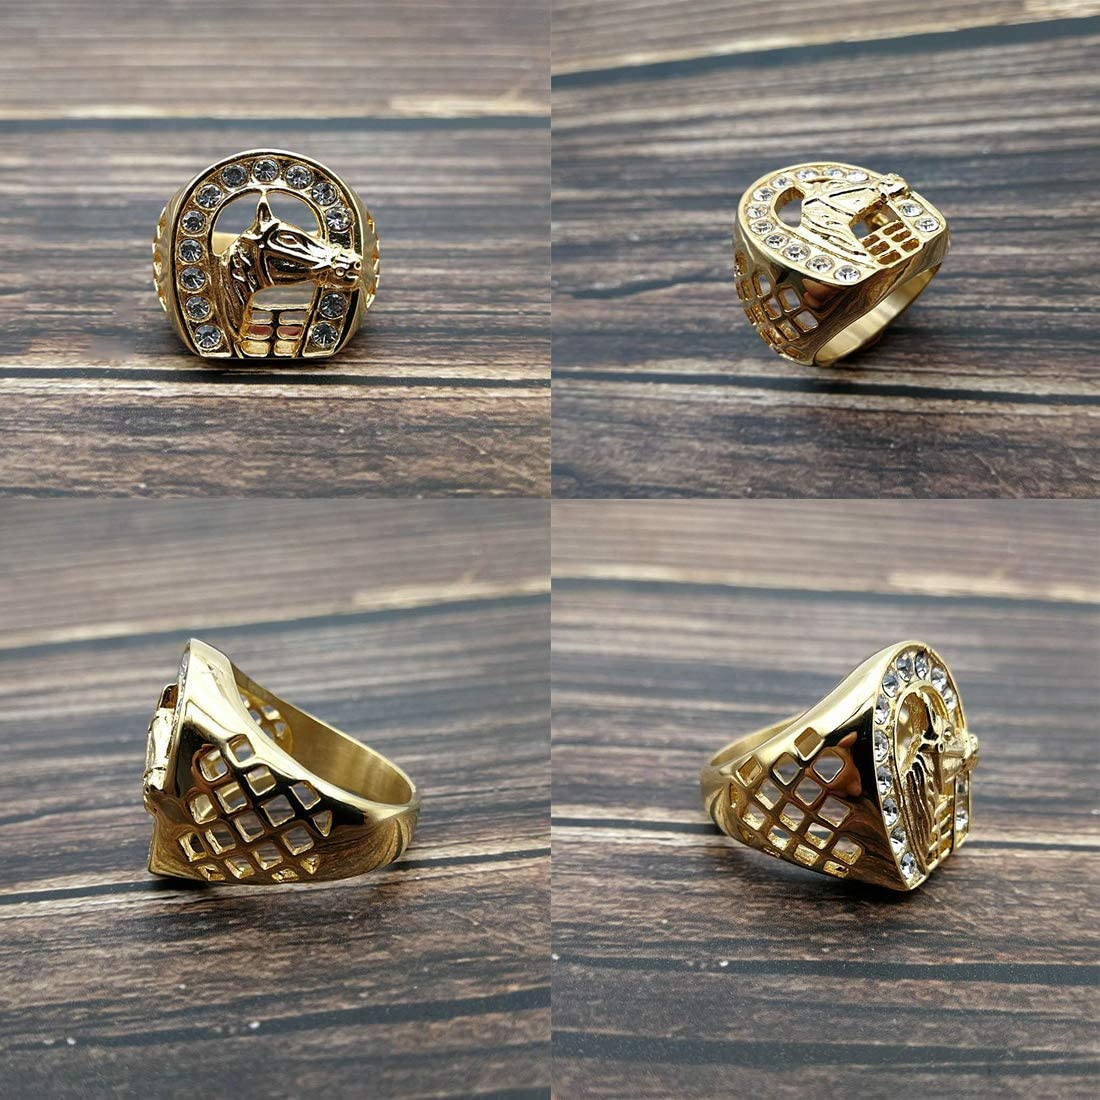 Size. LIANNAO Mens Stainless Steel Rings Horseshoe Horse Inlay Plated Gold Gemstone Cubic Zirconia Rings Men Hiphop Jewellery,Gold